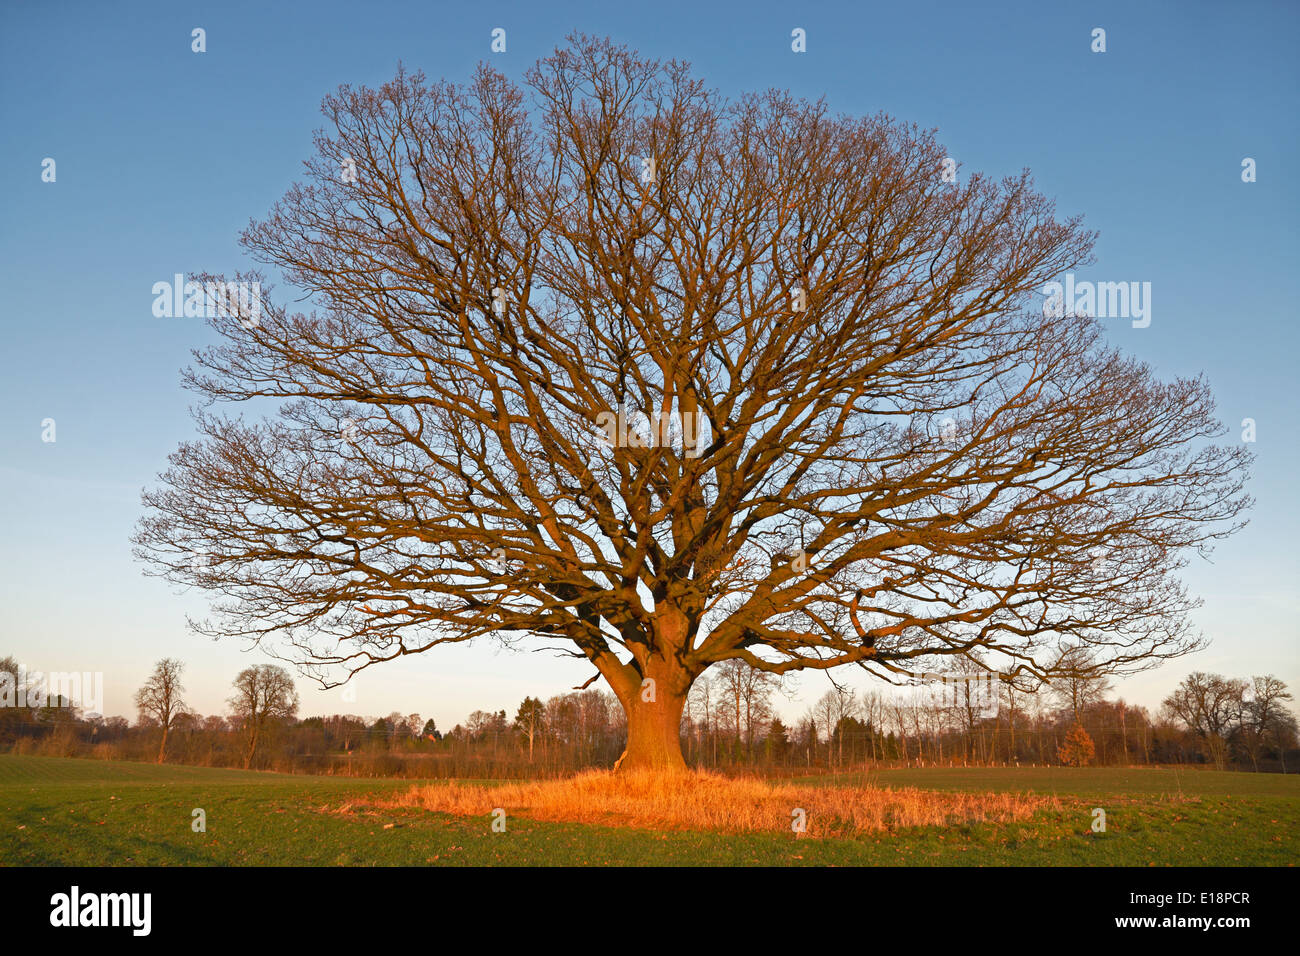 Big old oak tree, common oak, English oak, Quercus robur, with leafless branches against a blue winter afternoon Stock Photo